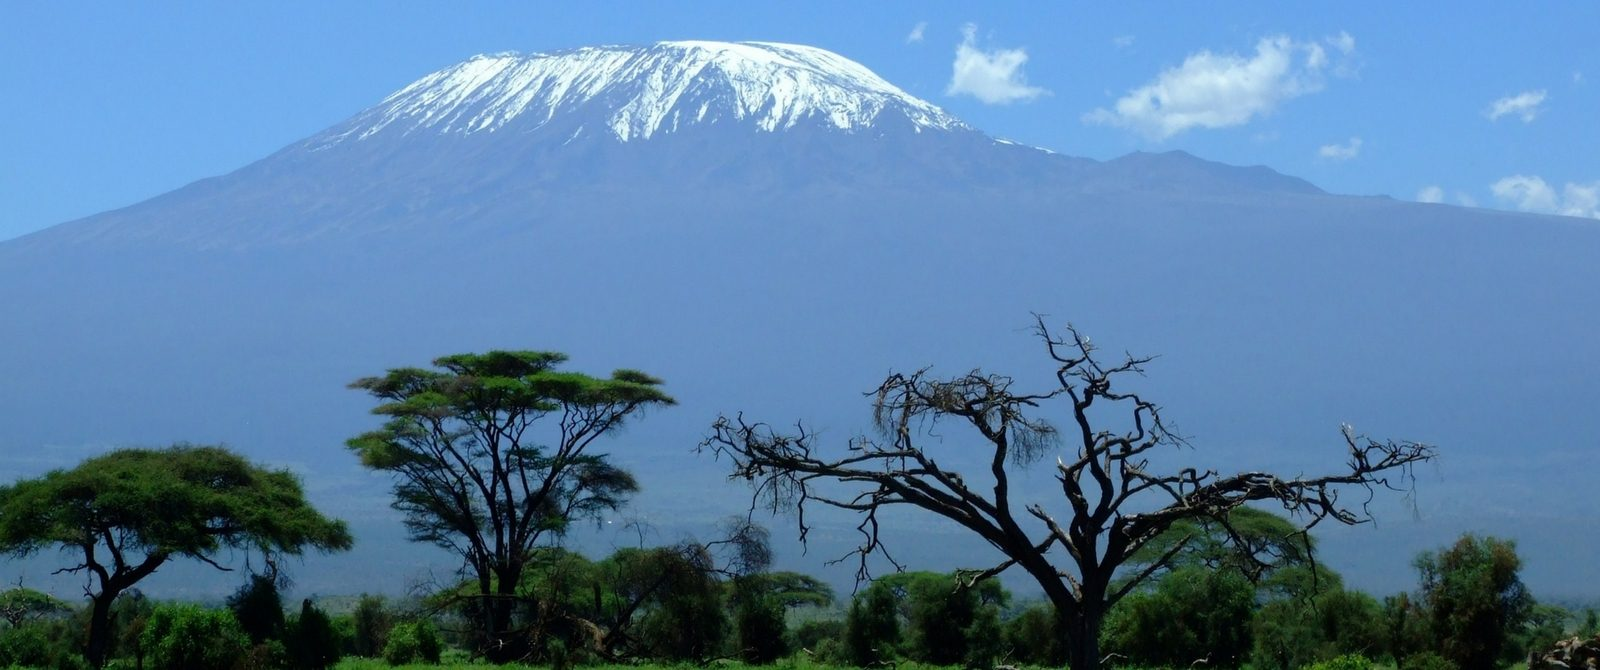 Small Group Adventure to Kilimanjaro Canva